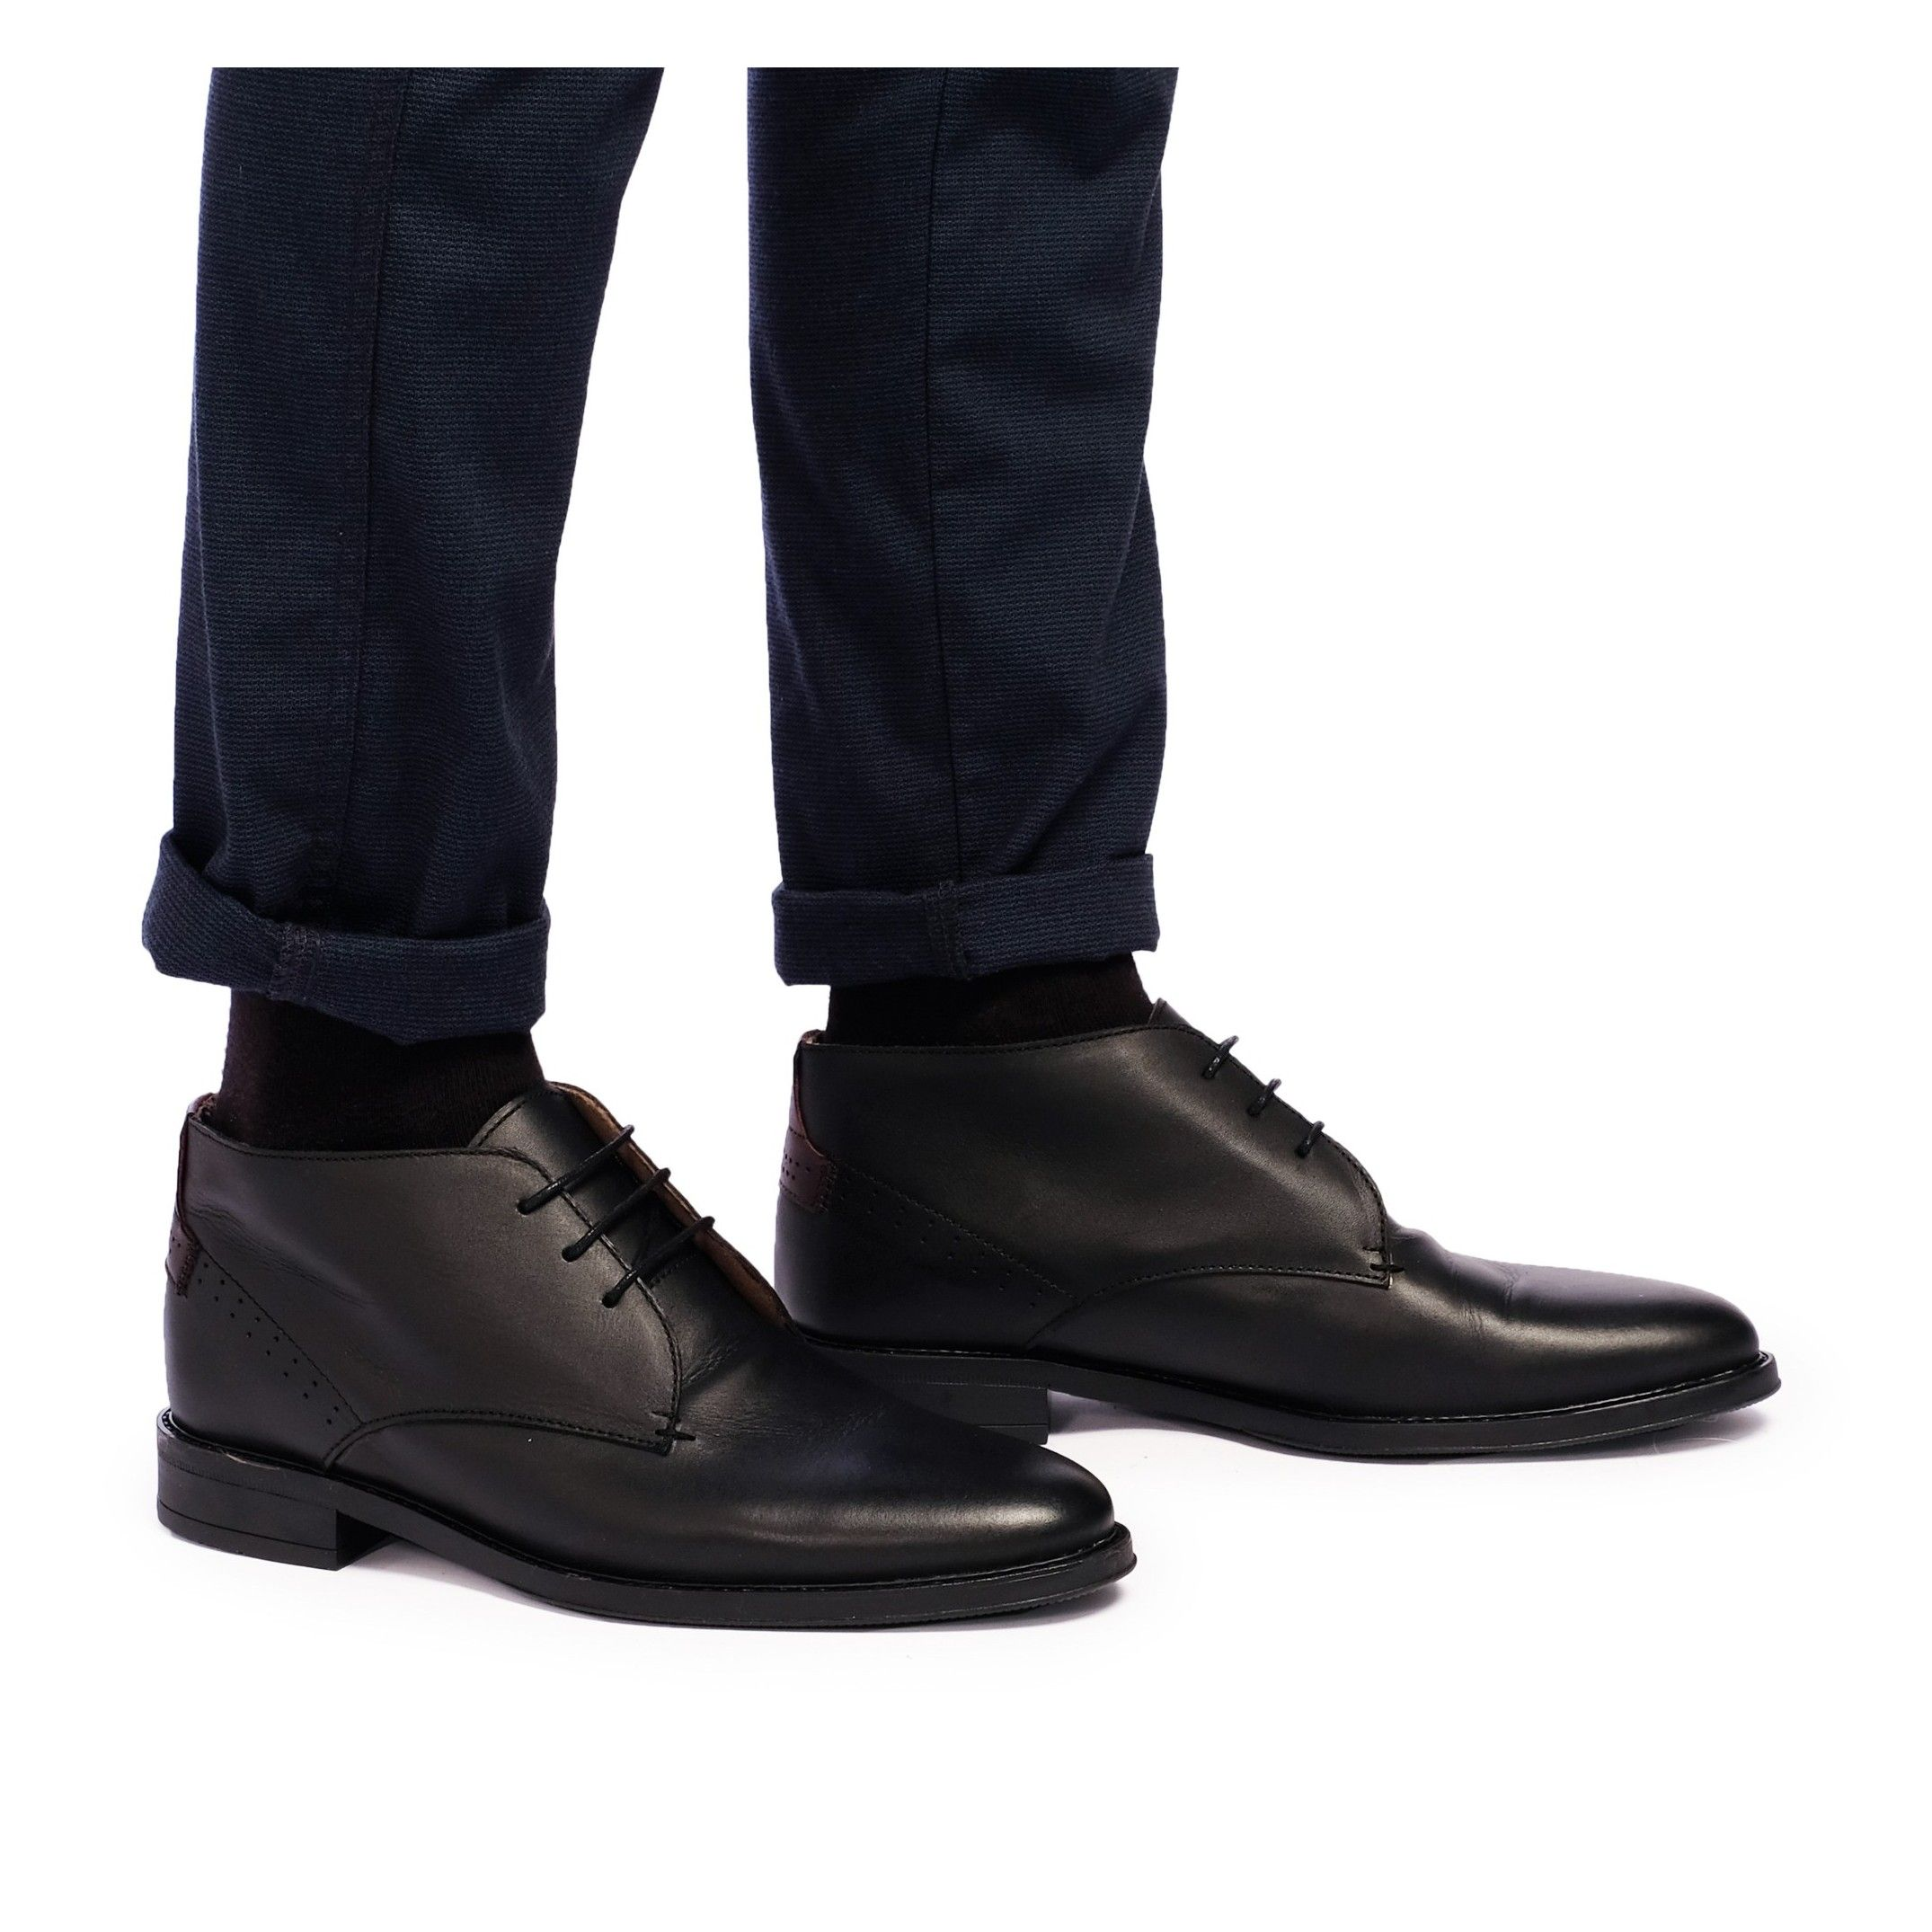 Men's Leather Ankle Boots Shoes Winter in Black